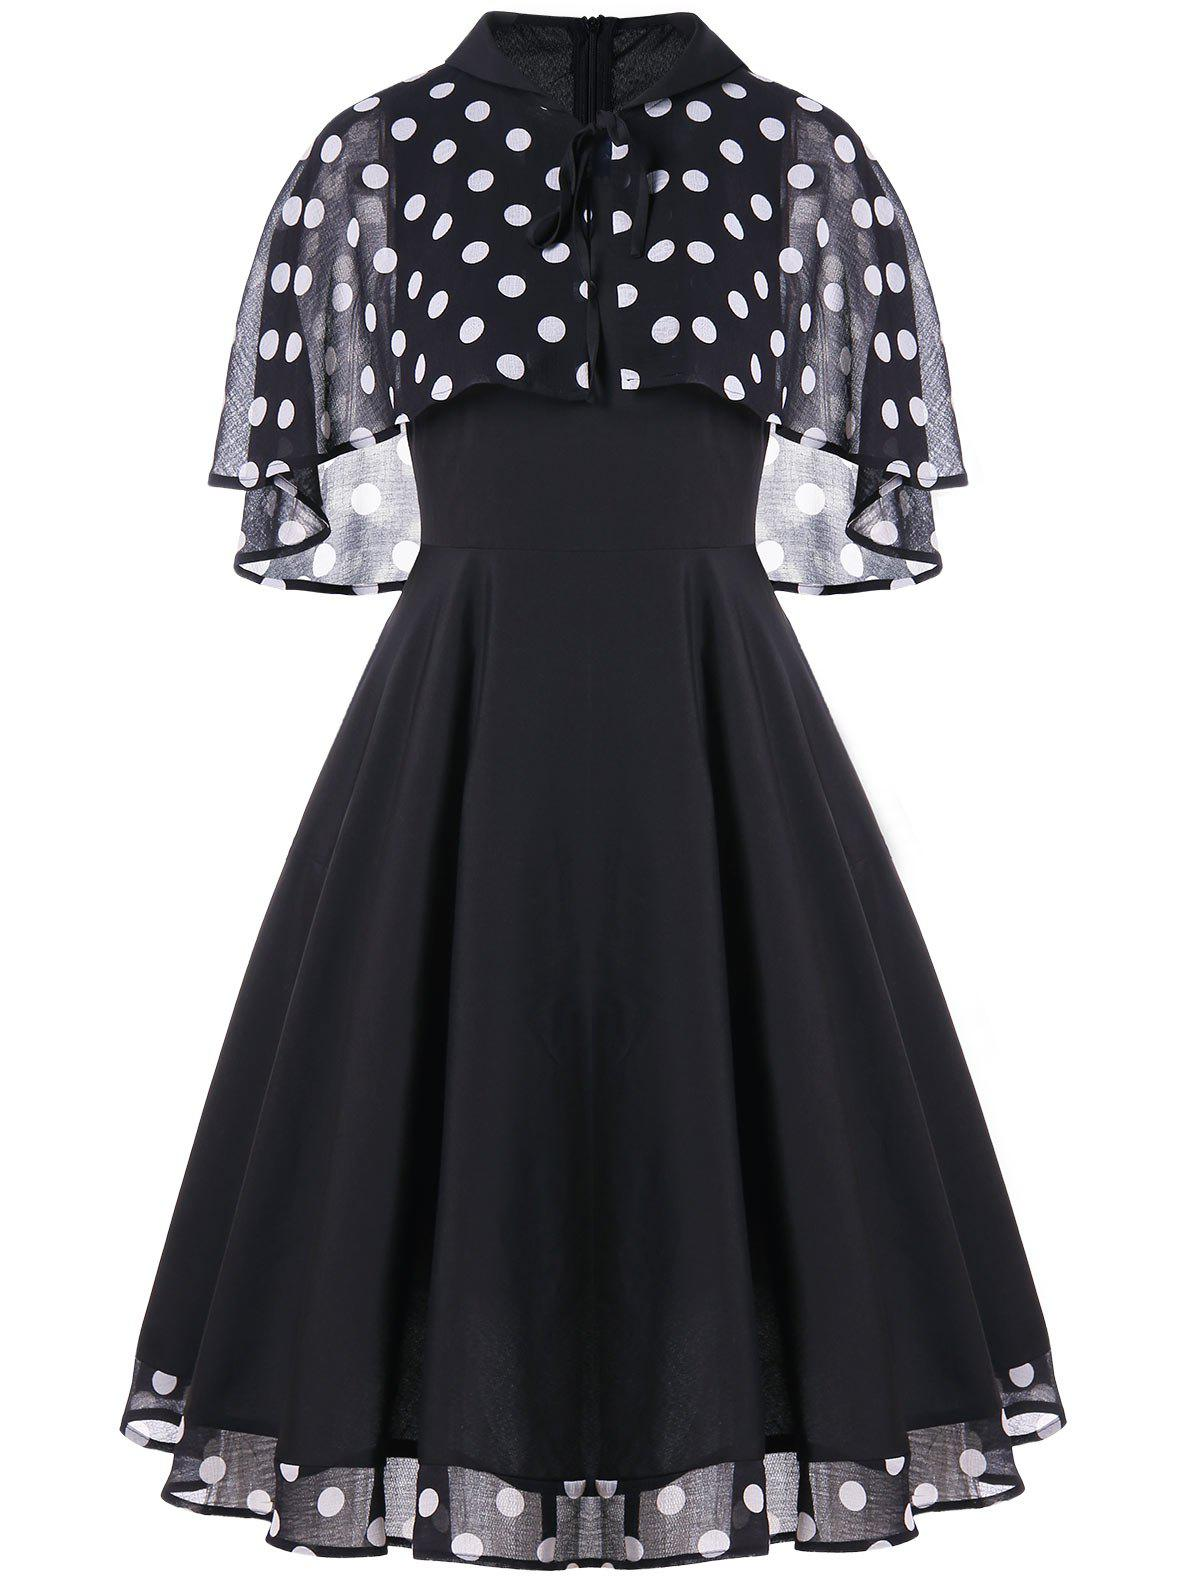 Affordable Vintage Polka Dot Party Skater Dress With Cape